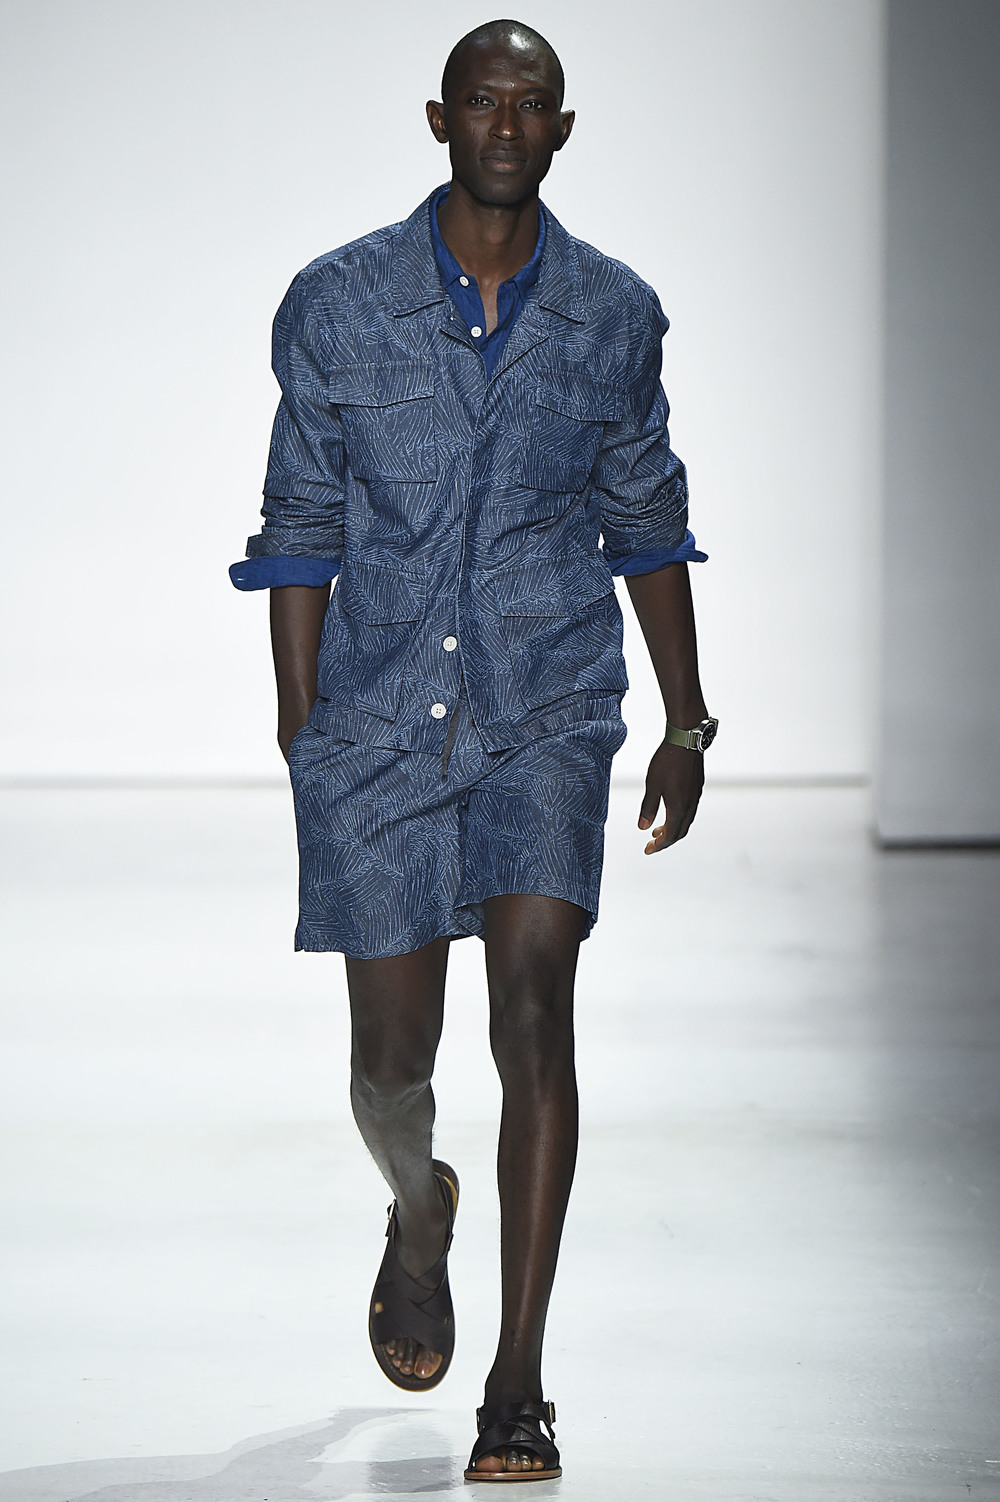 Theo Blix ® NYFW TODD SNYDER All rights reserved 25